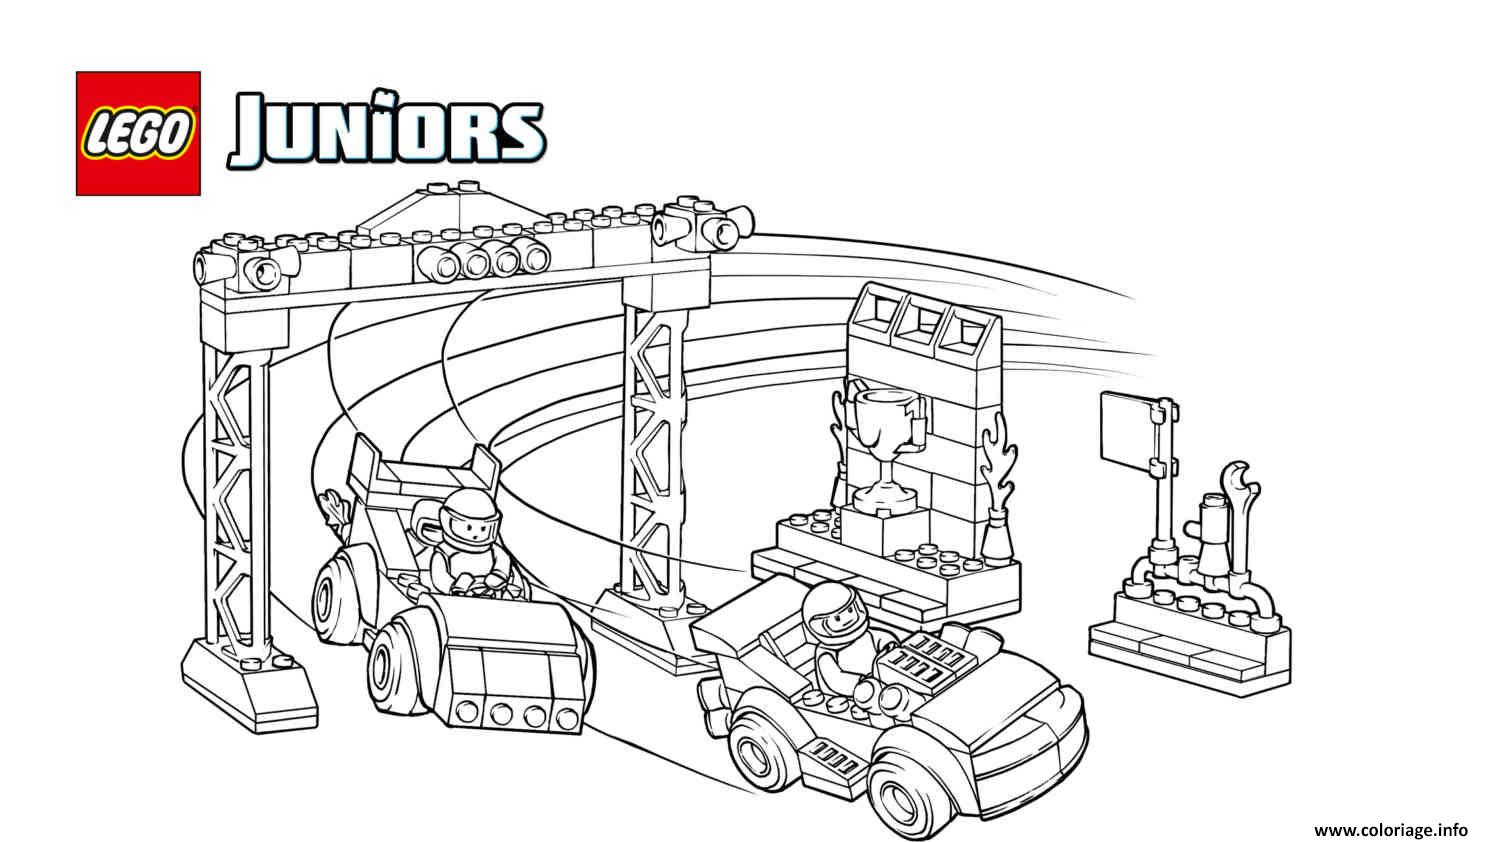 Coloriage Voiture De Course Lego Juniors Jecolorie Com